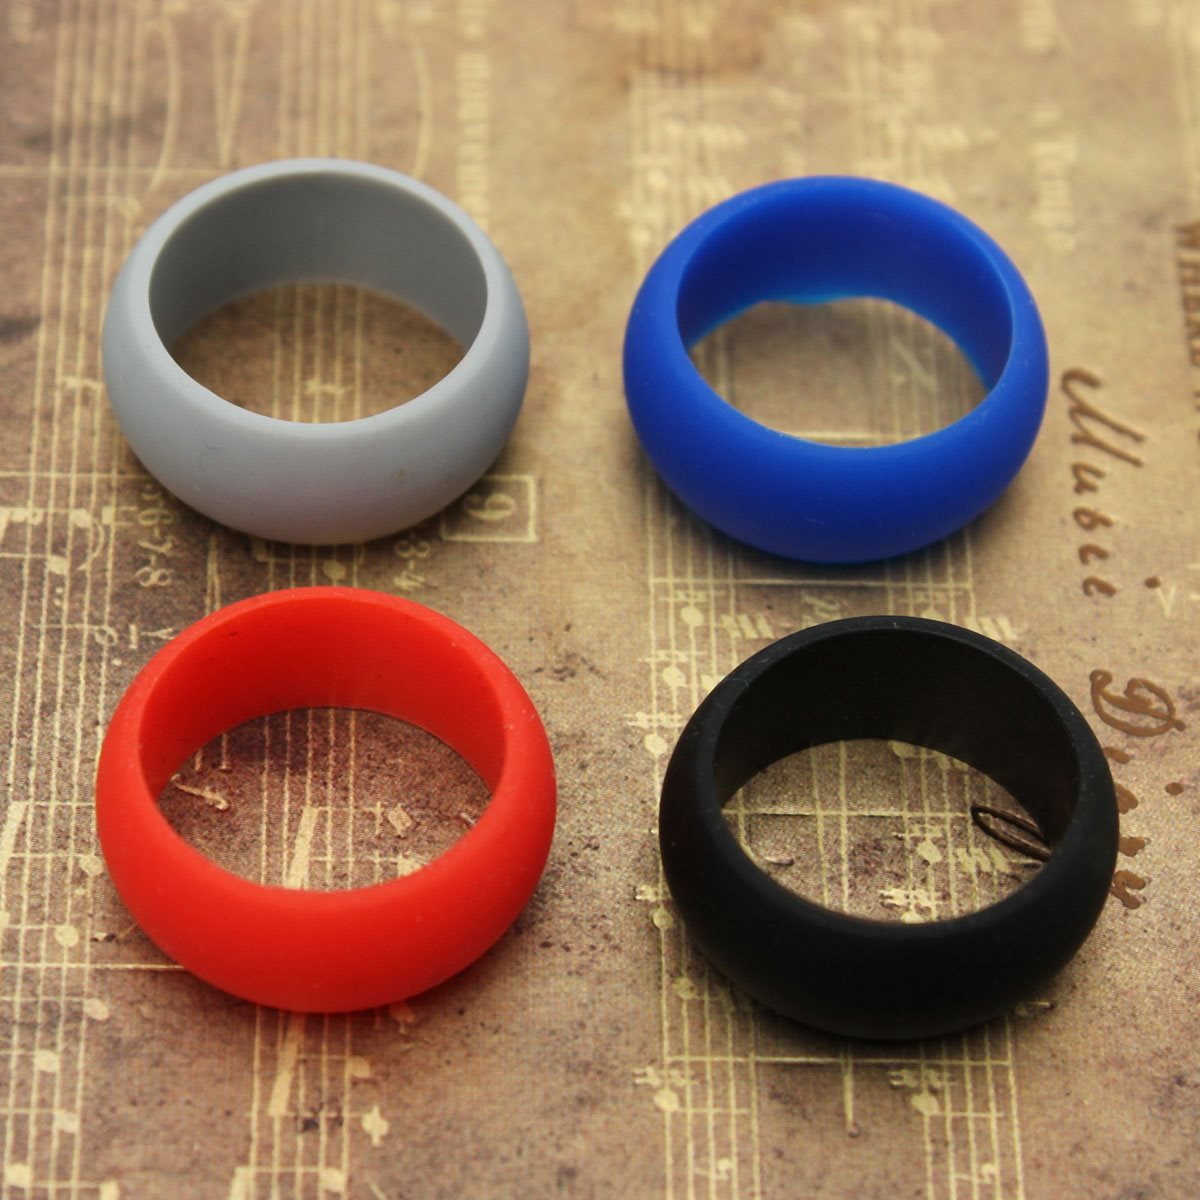 Rubber Wedding Rings For Men >> Hot Selling Ring Flexible Hypoallergenic Silicone Rubber 4 Colors Wedding Rings Engagement ...